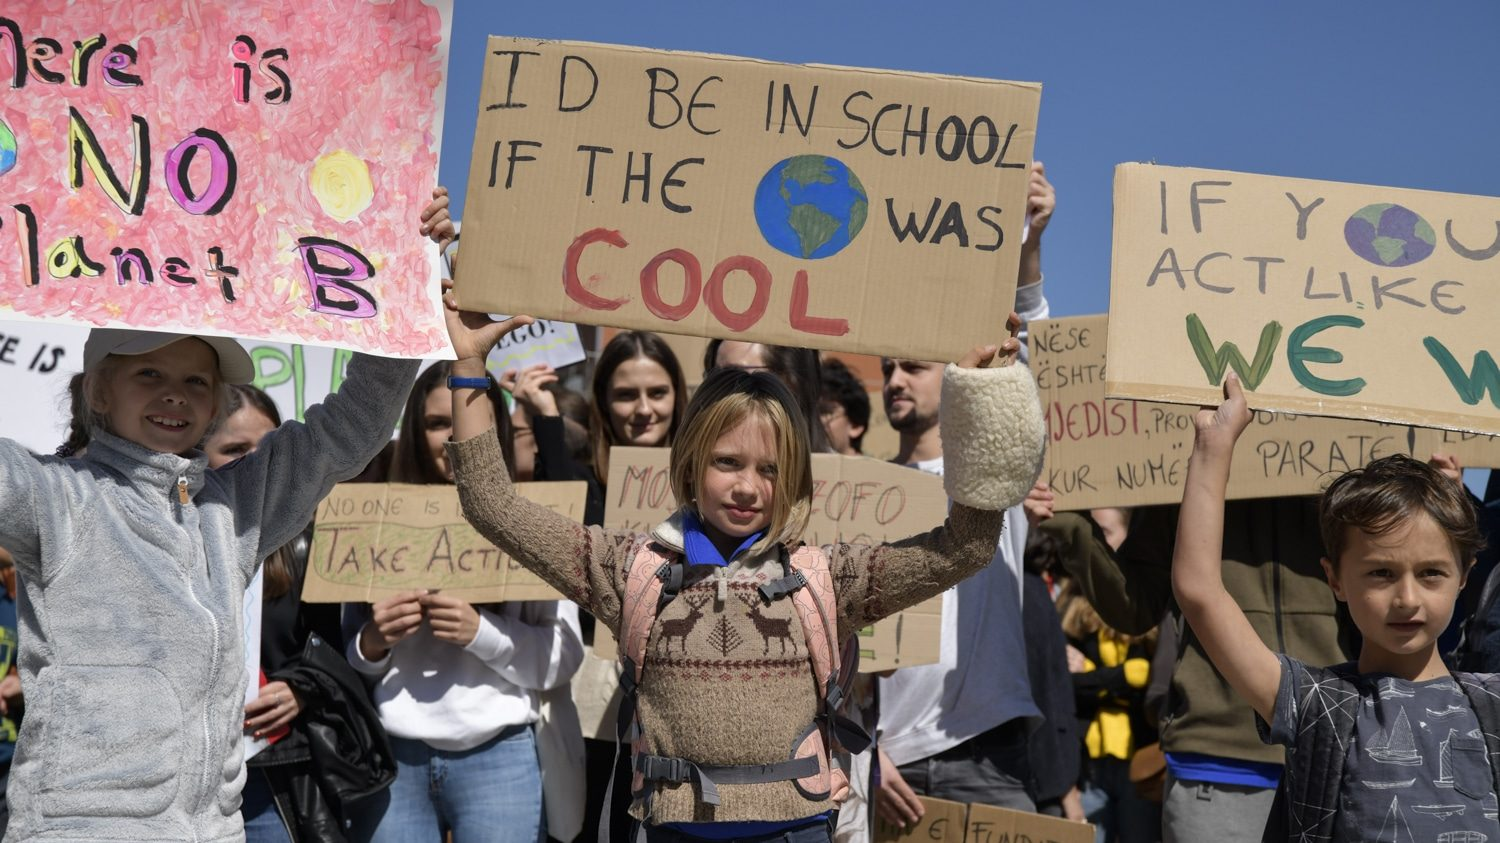 Balkan Youngsters Join Global Climate Change Action | Balkan Insight